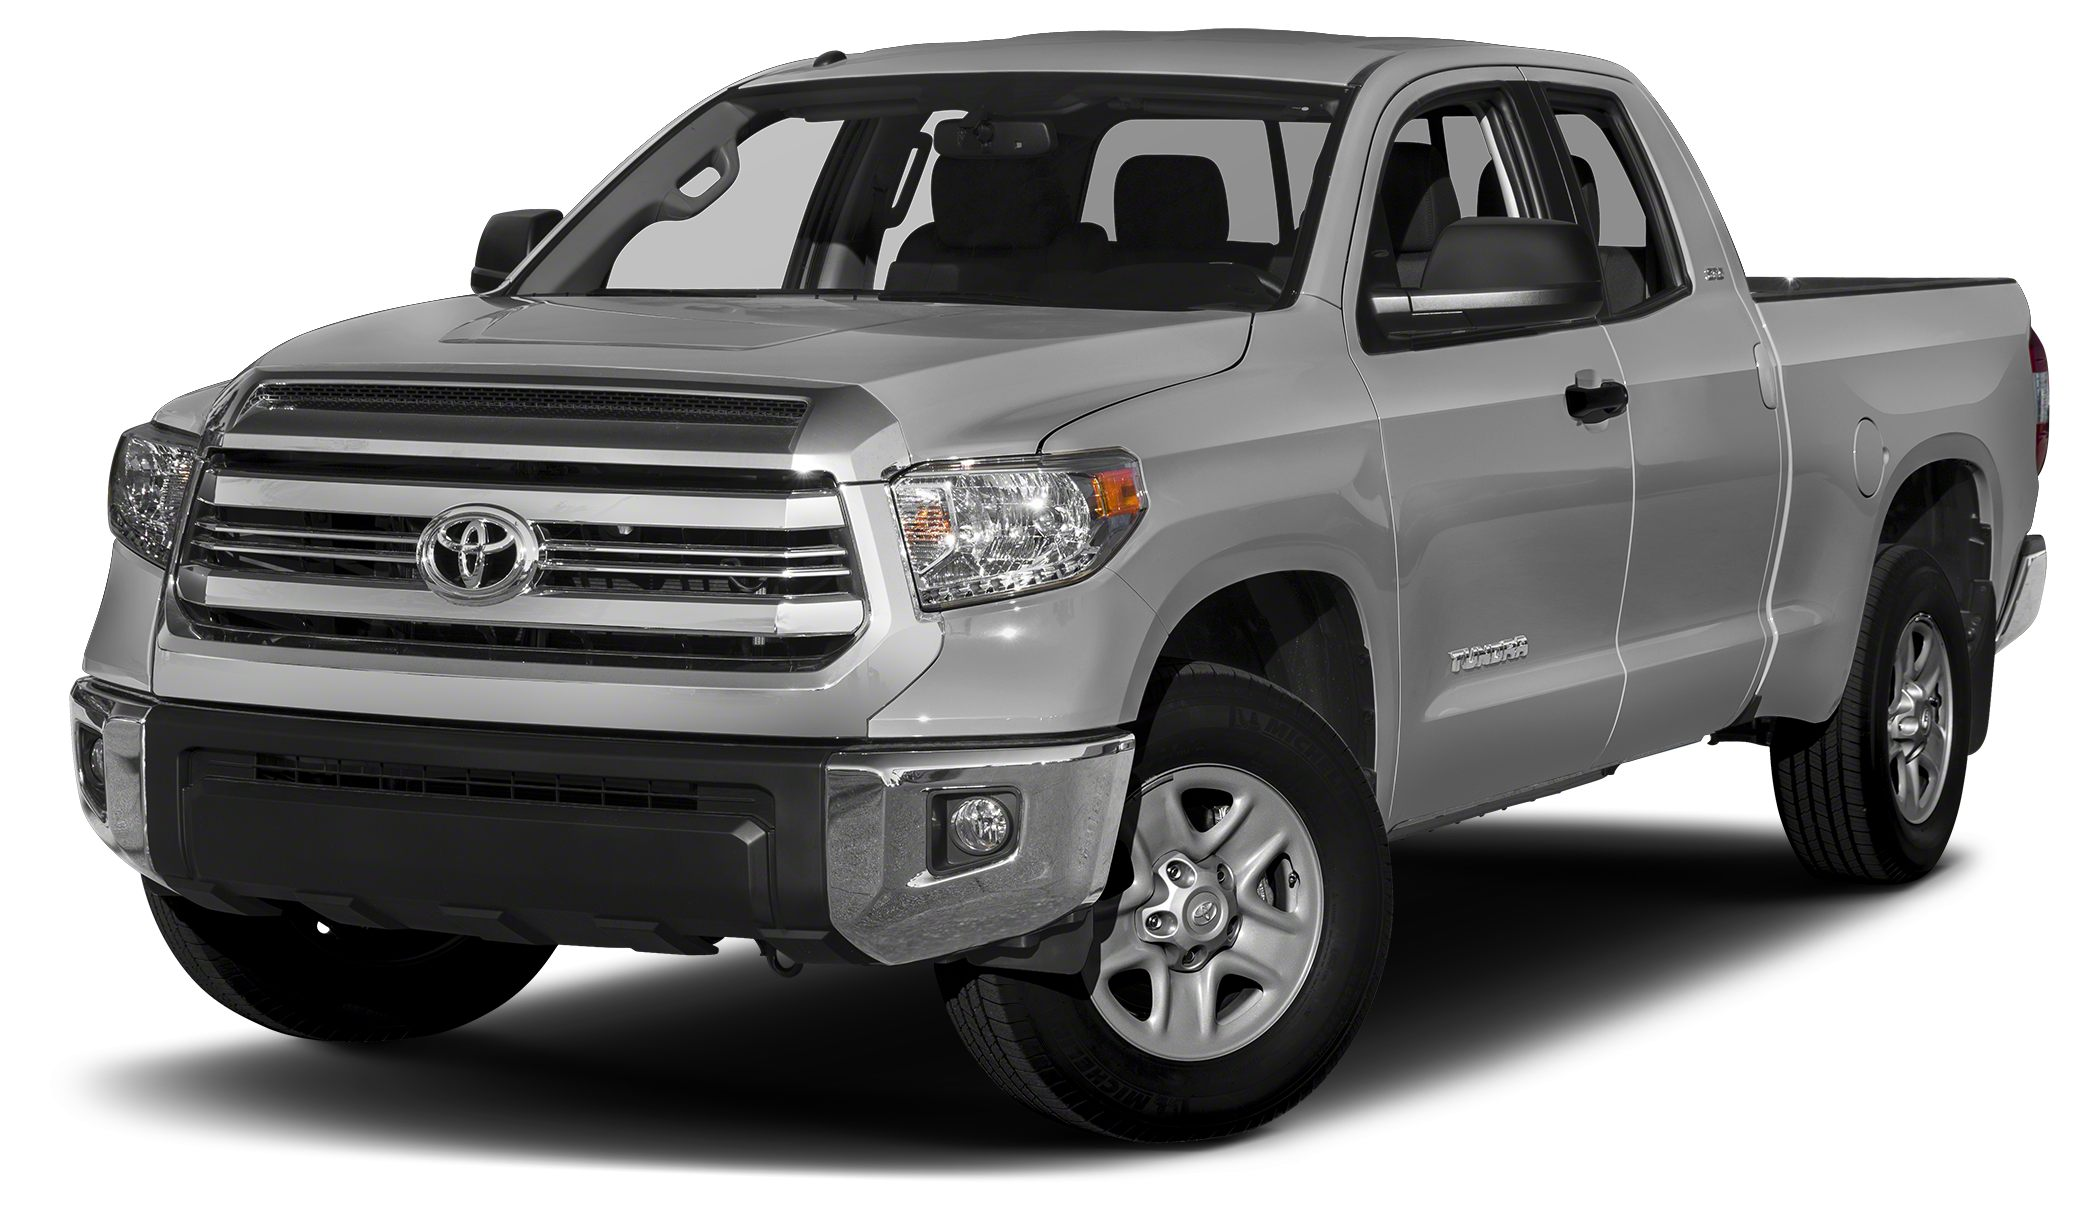 2014 Toyota Tundra SR5 This 2014 Tundra is for Toyota fans who are hunting for that pampered one-